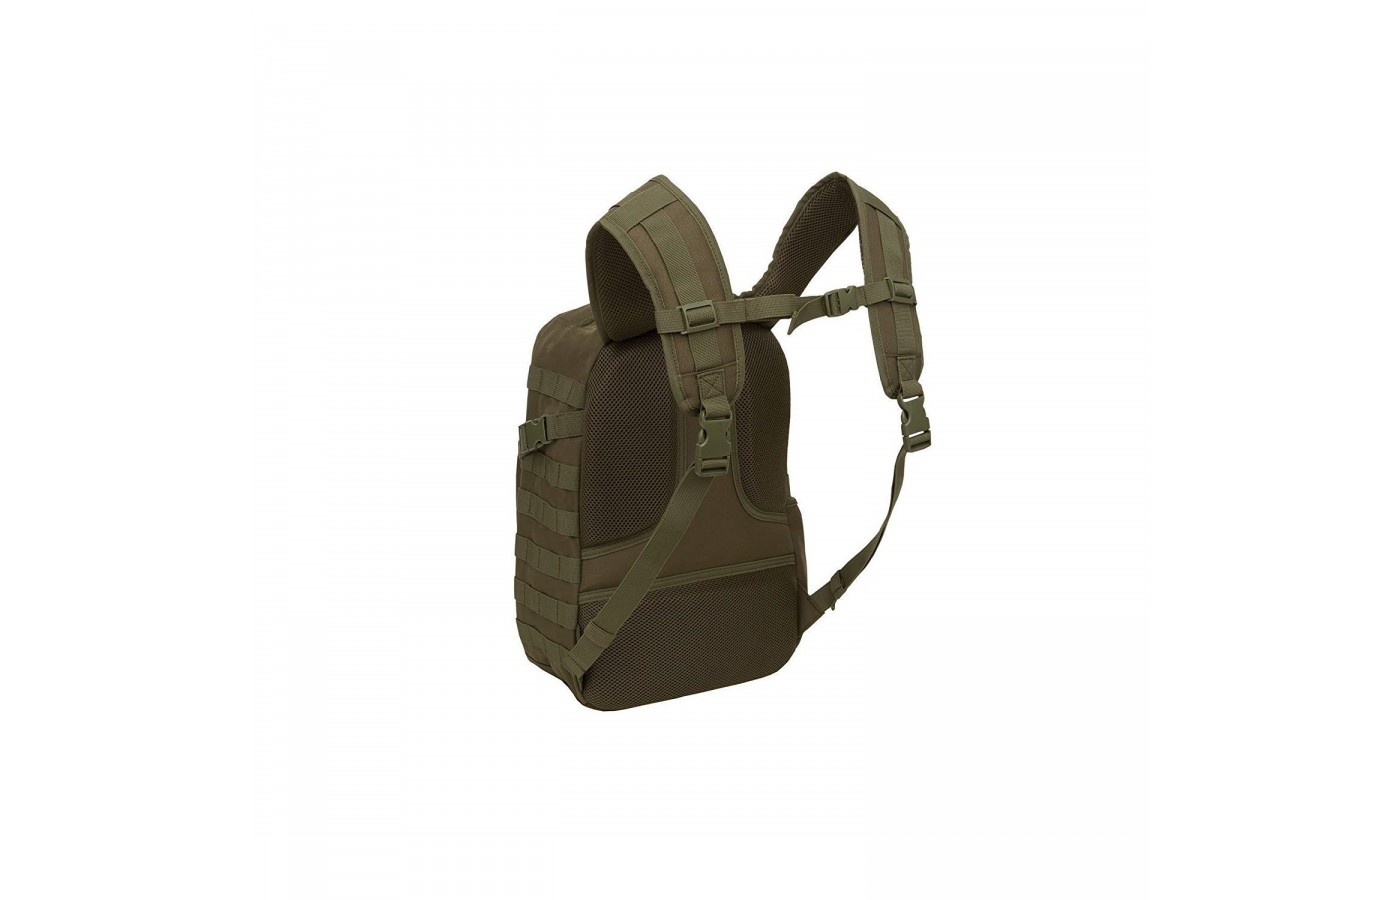 The Sog Ninja Daypack offers a chest strap for better support.